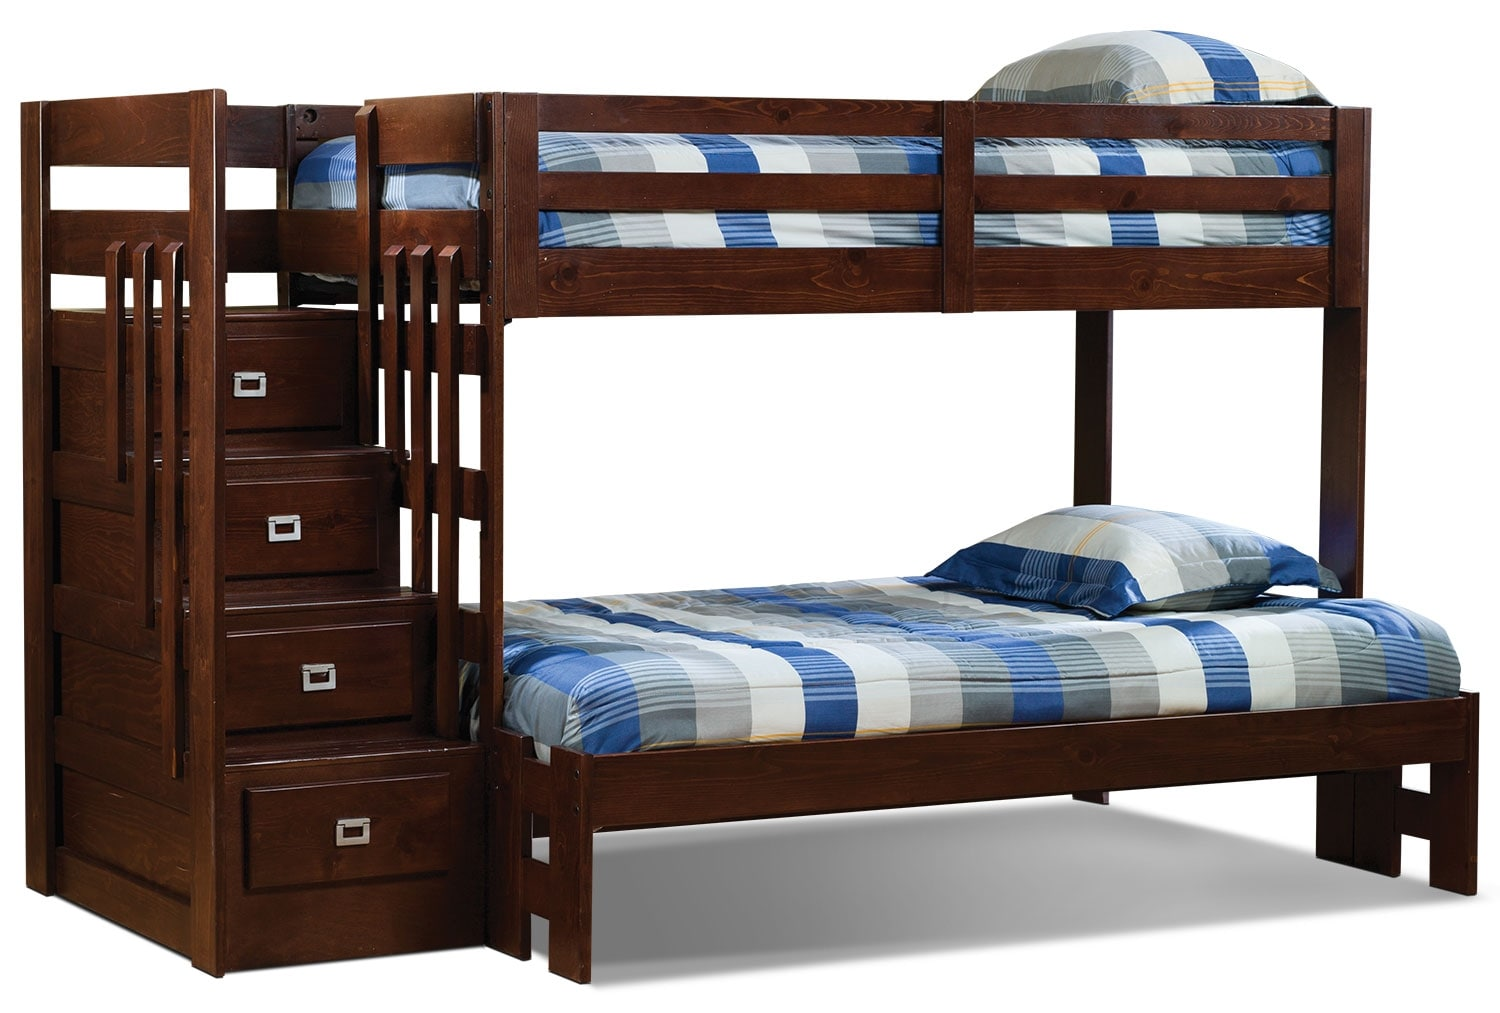 Berkeley Twin/Full Staircase Bunk Bed  United Furniture Warehouse